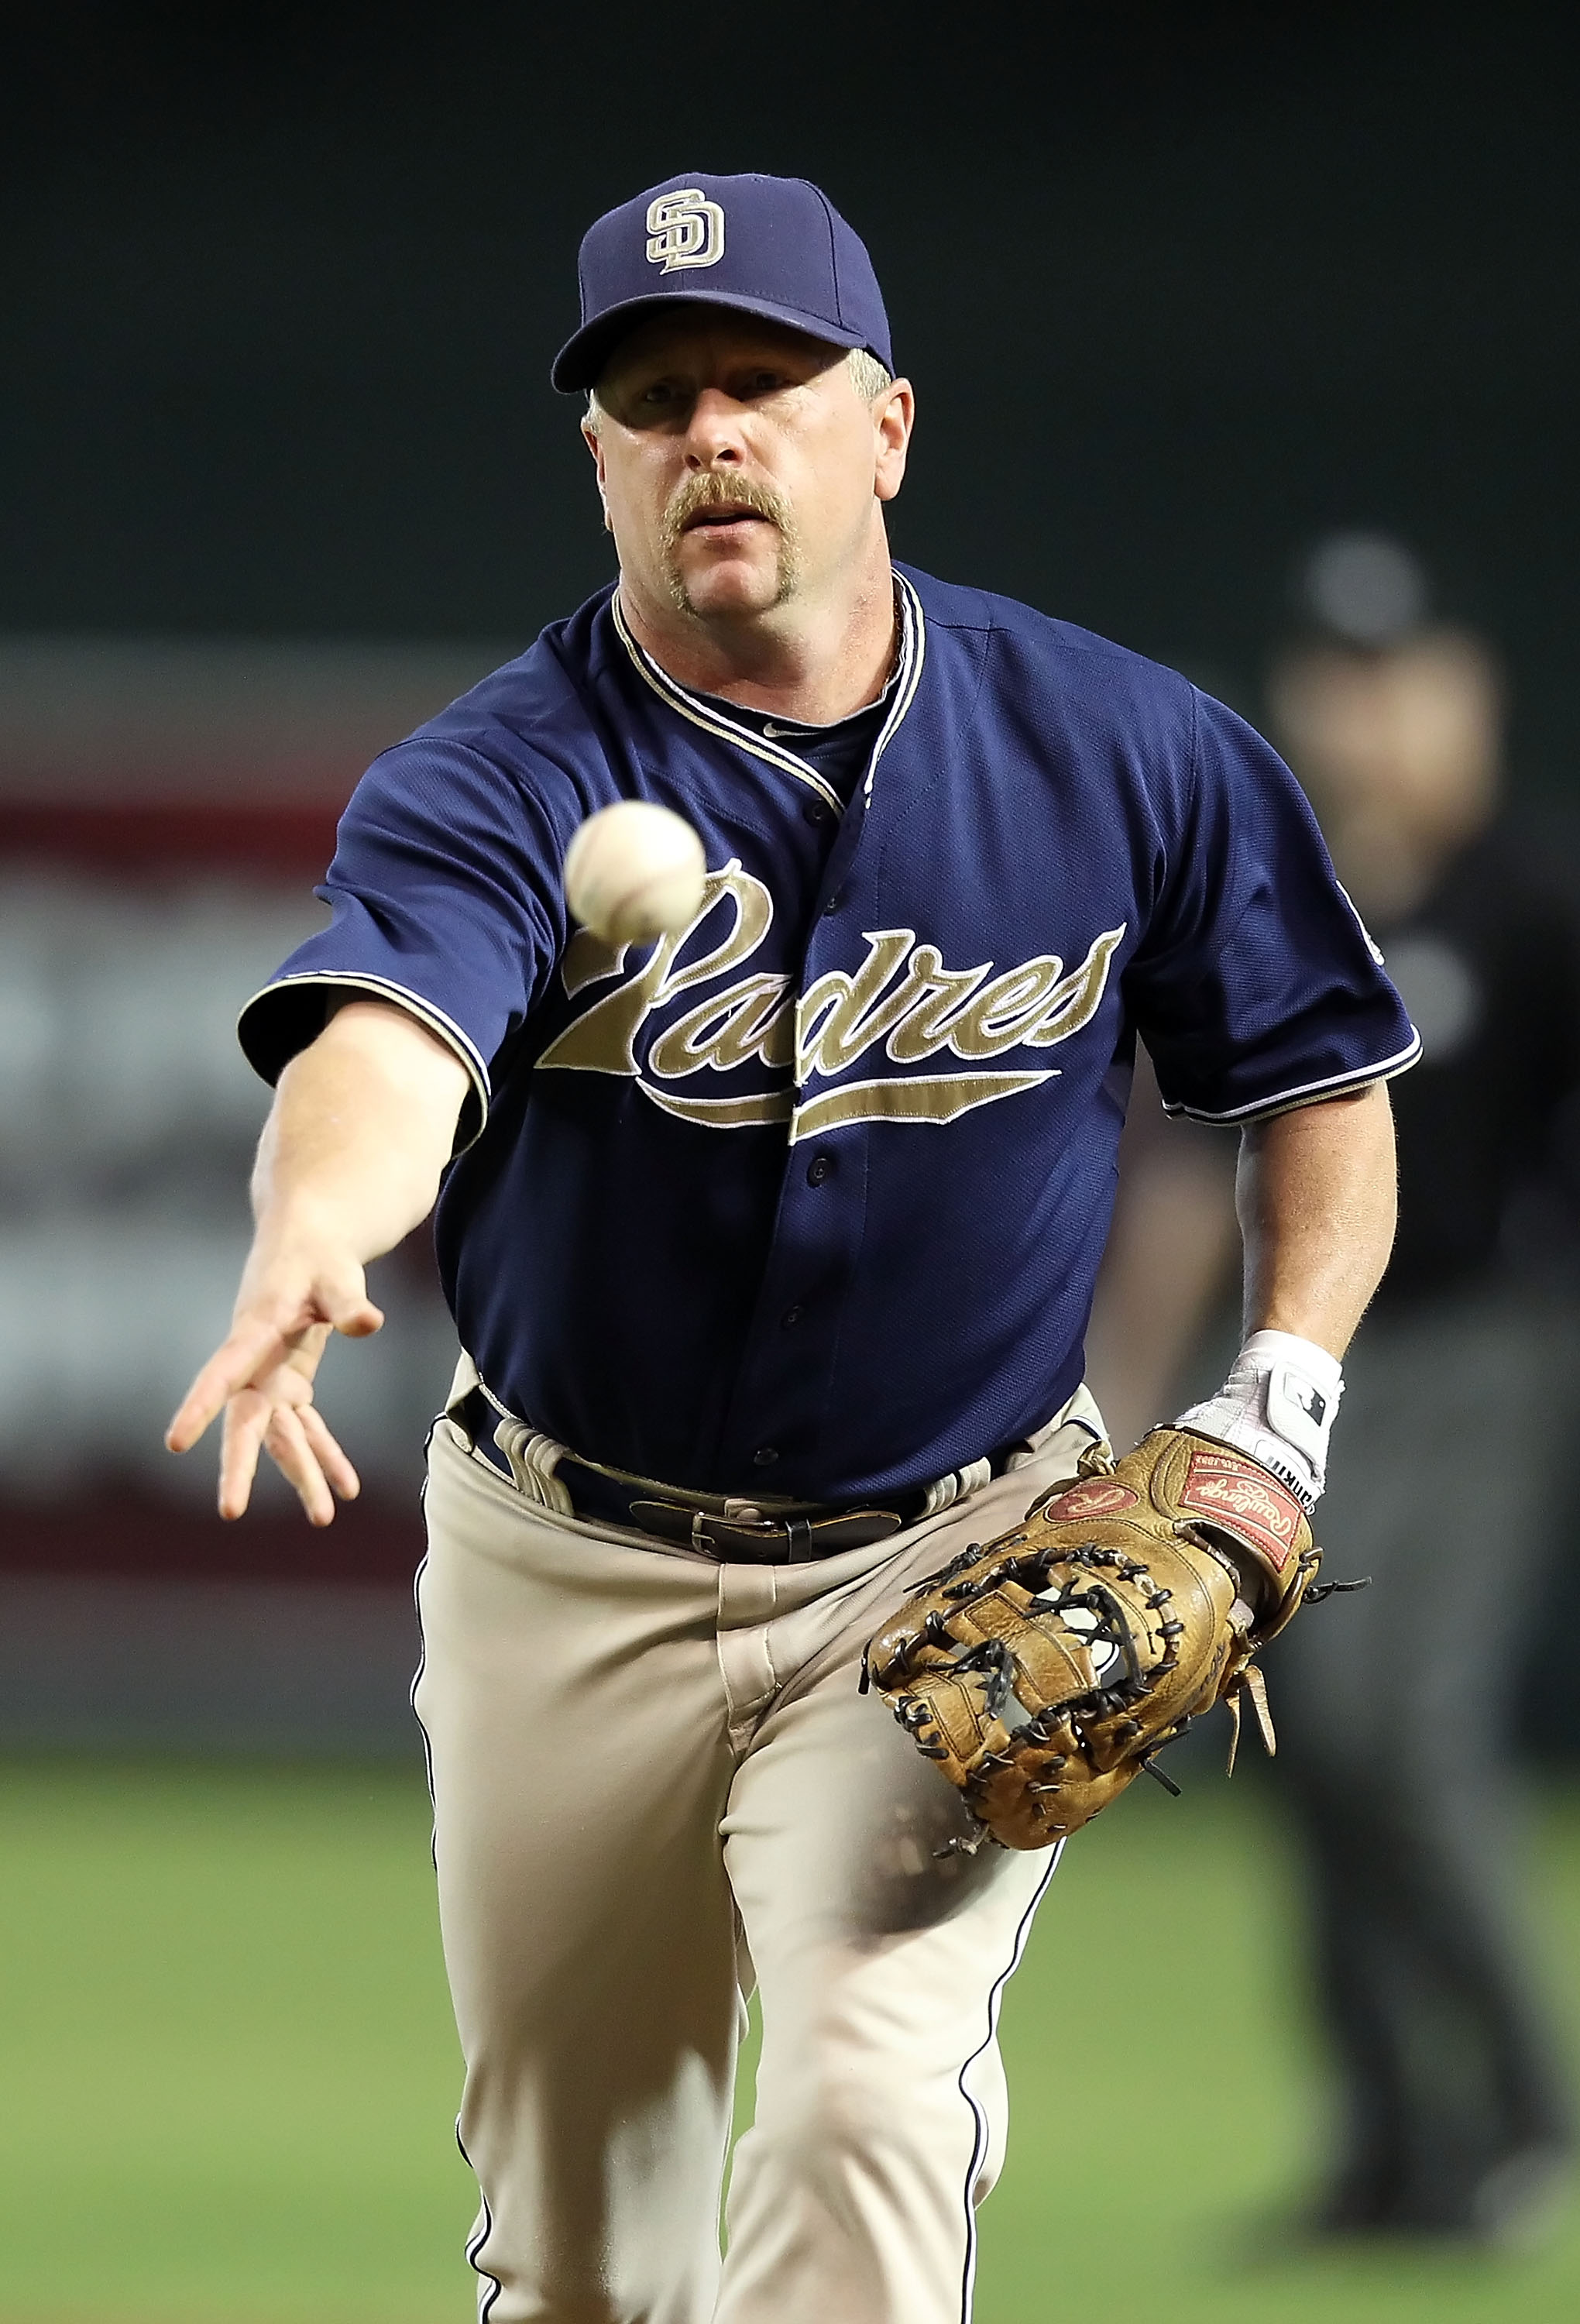 PHOENIX - AUGUST 08:  Infielder Matt Stairs #16 of the San Diego Padres fields a ground ball out agianst the Arizona Diamondbacks during the Major League Baseball game at Chase Field on August 8, 2010 in Phoenix, Arizona.  (Photo by Christian Petersen/Get